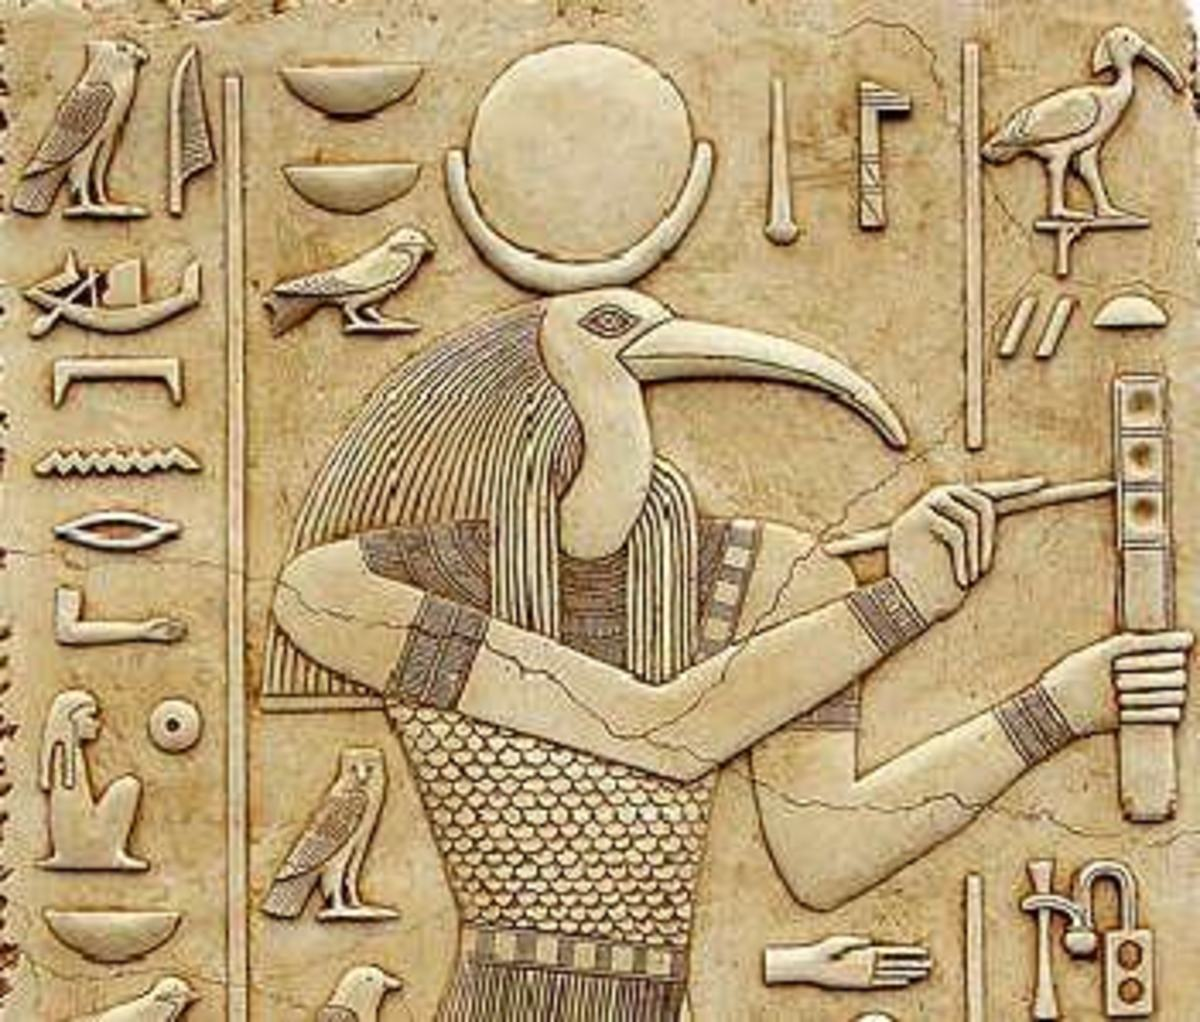 Thoth, known as the Egyptian god of Wisdom